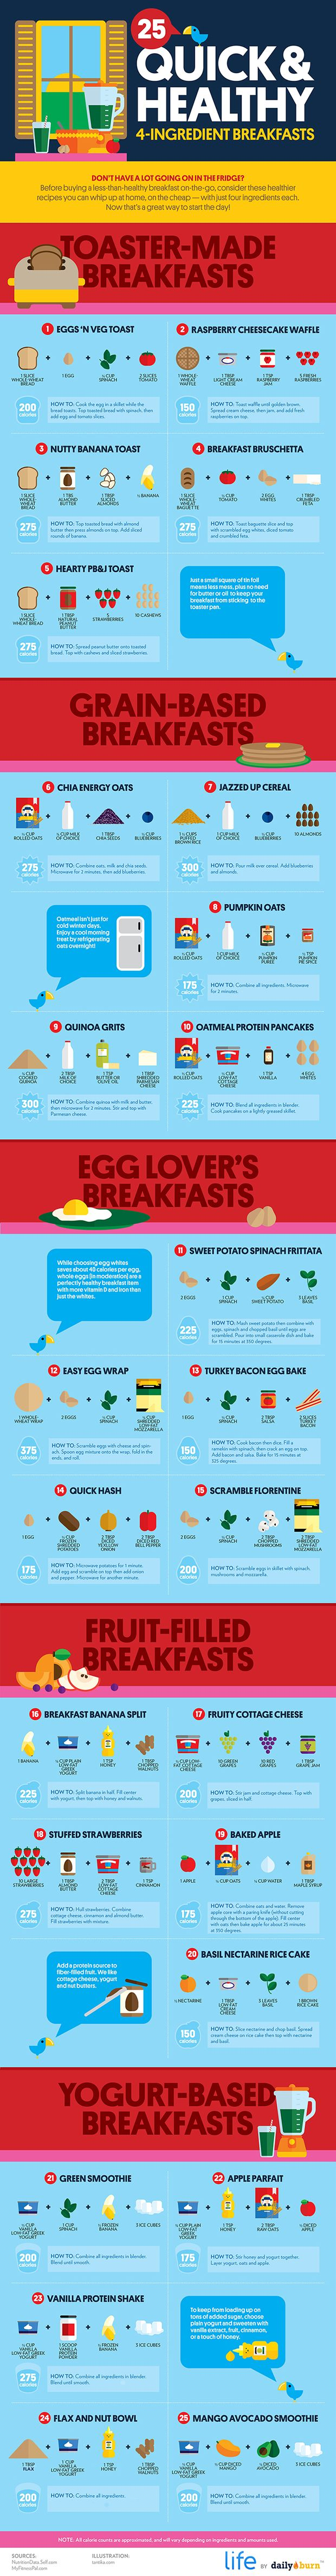 The days after a big food holiday can feel a little... sluggish. Start things off right with an easy, healthy breakfast.